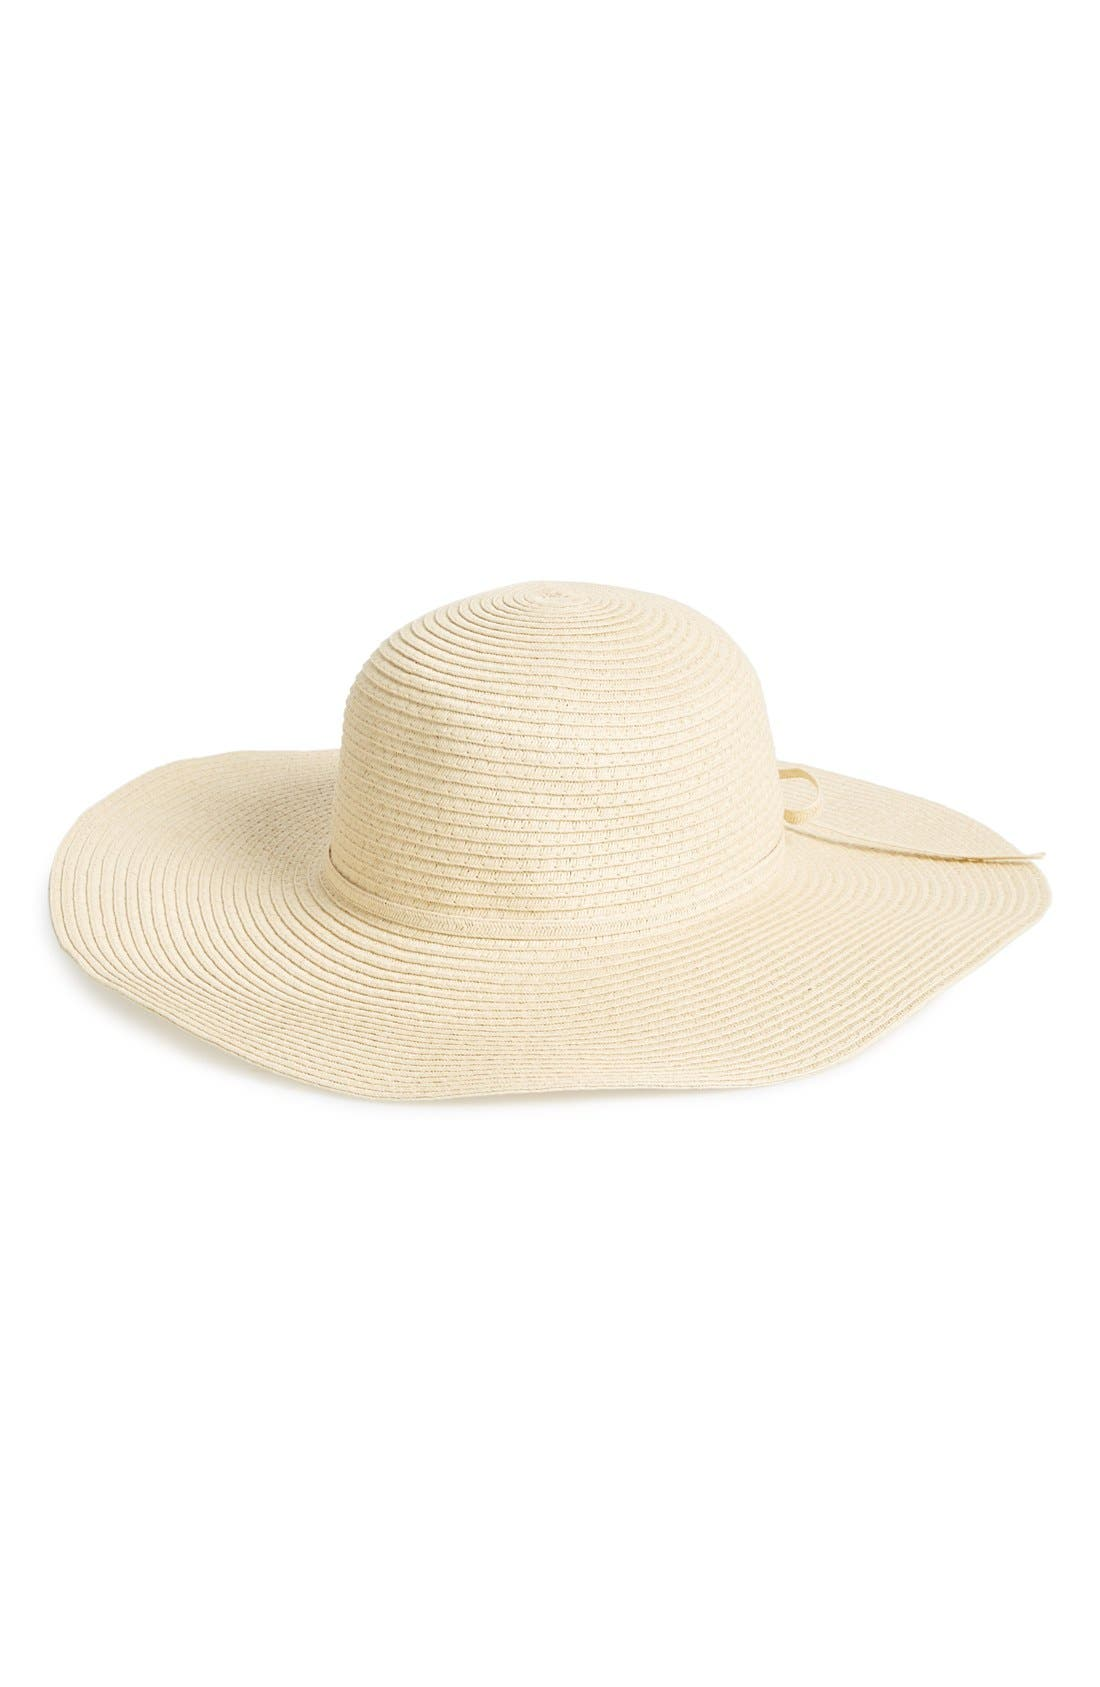 Main Image - Amici Accessories Floppy Straw Hat (Juniors)